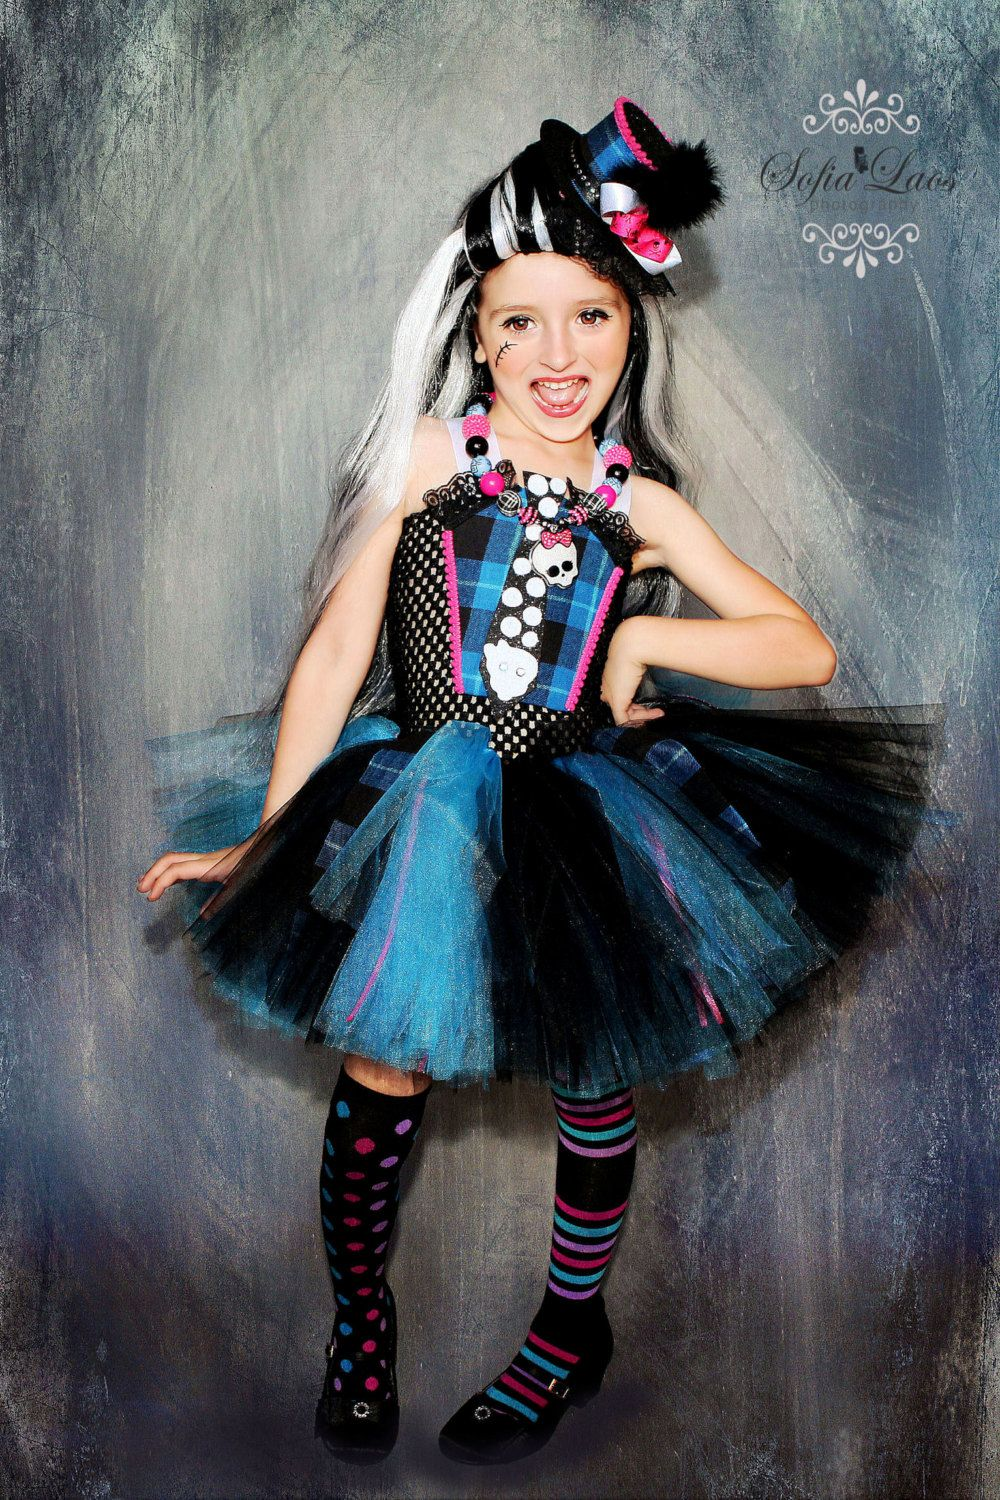 Frankie+Stein+inspired+costume+from+by+SofiasCoutureDesigns,+$69.00